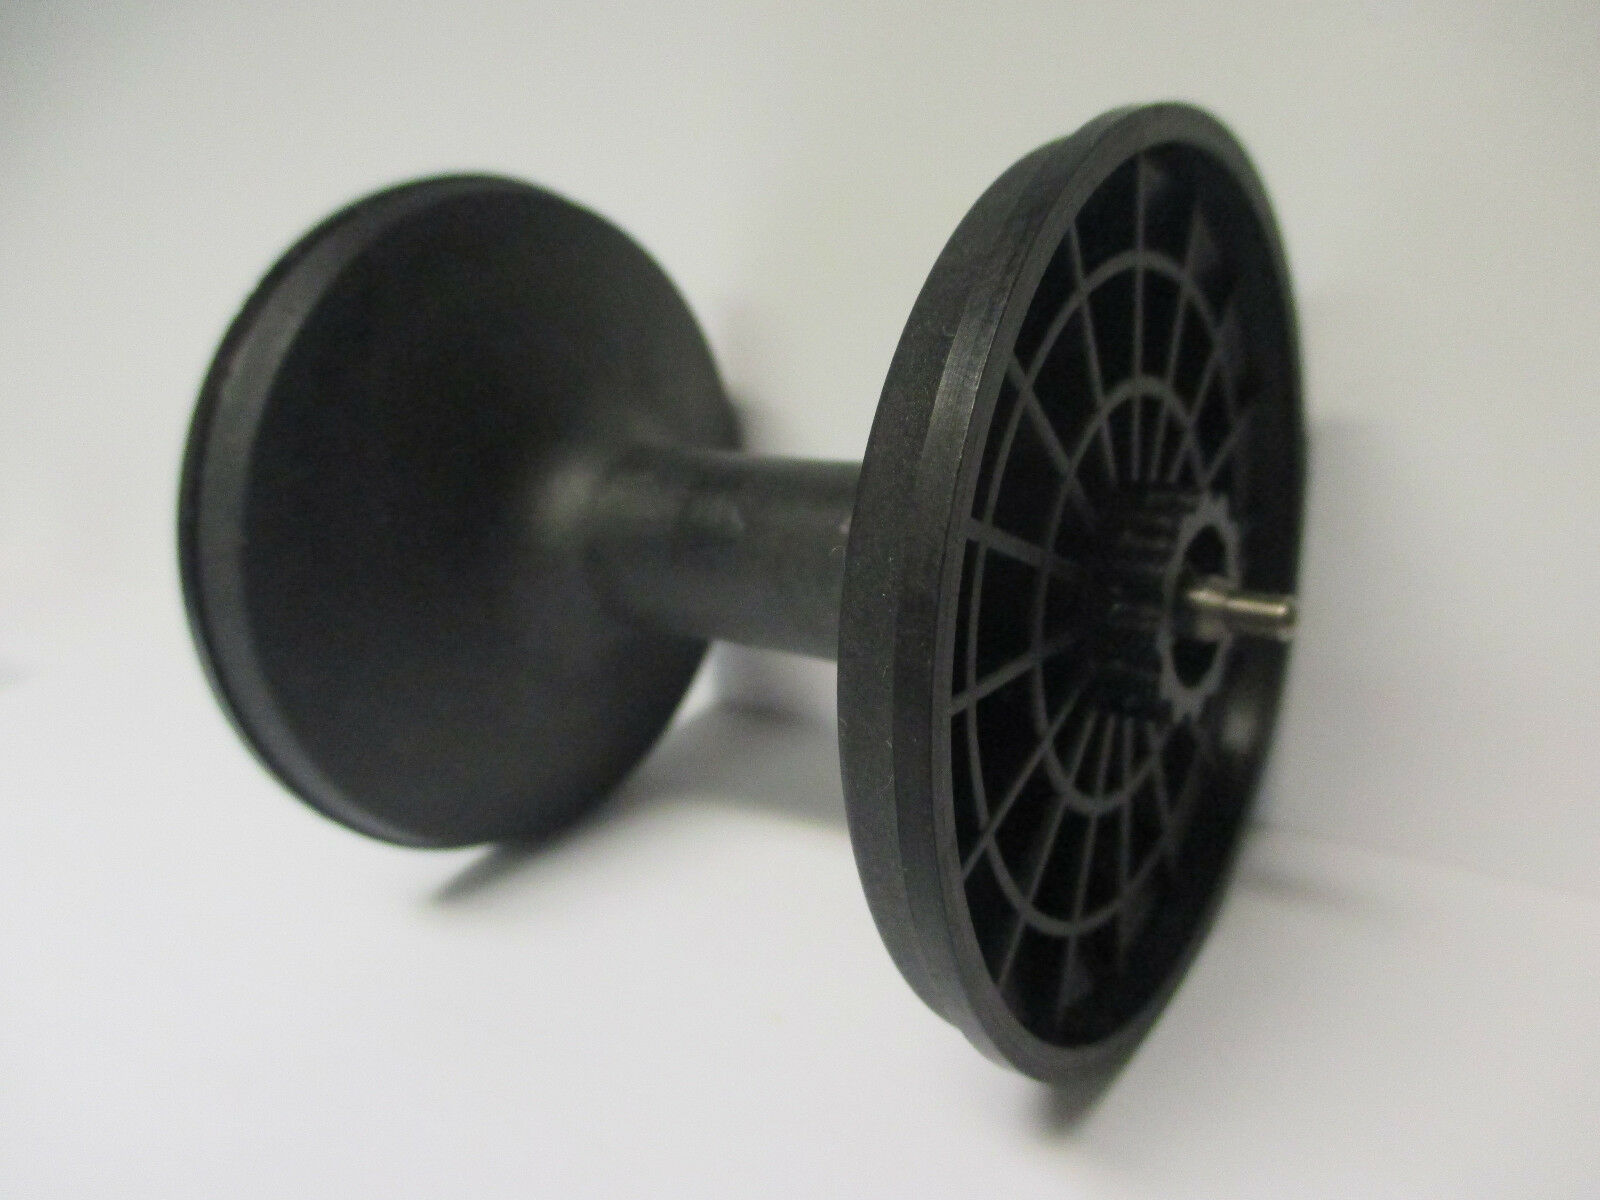 USED NEWELL BIG GAME REEL PART - S 540 4.6 - Spool Assembly